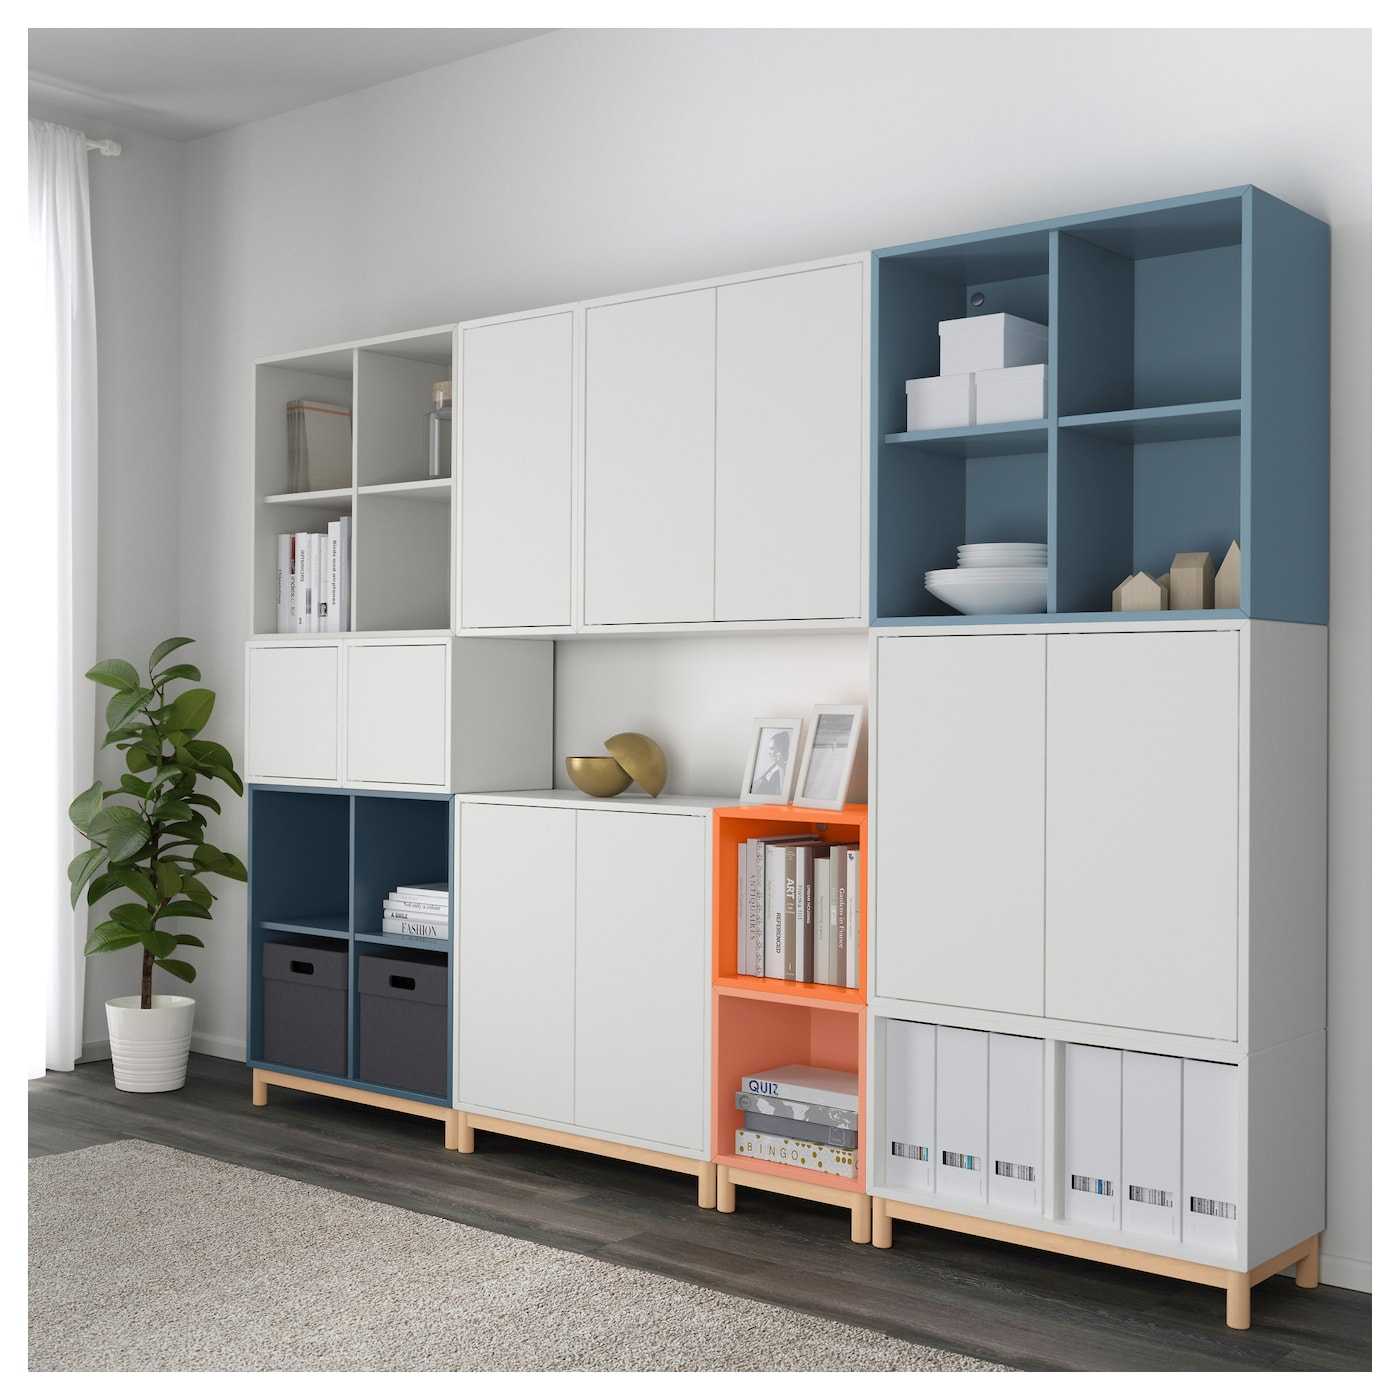 IKEA EKET cabinet combination with legs